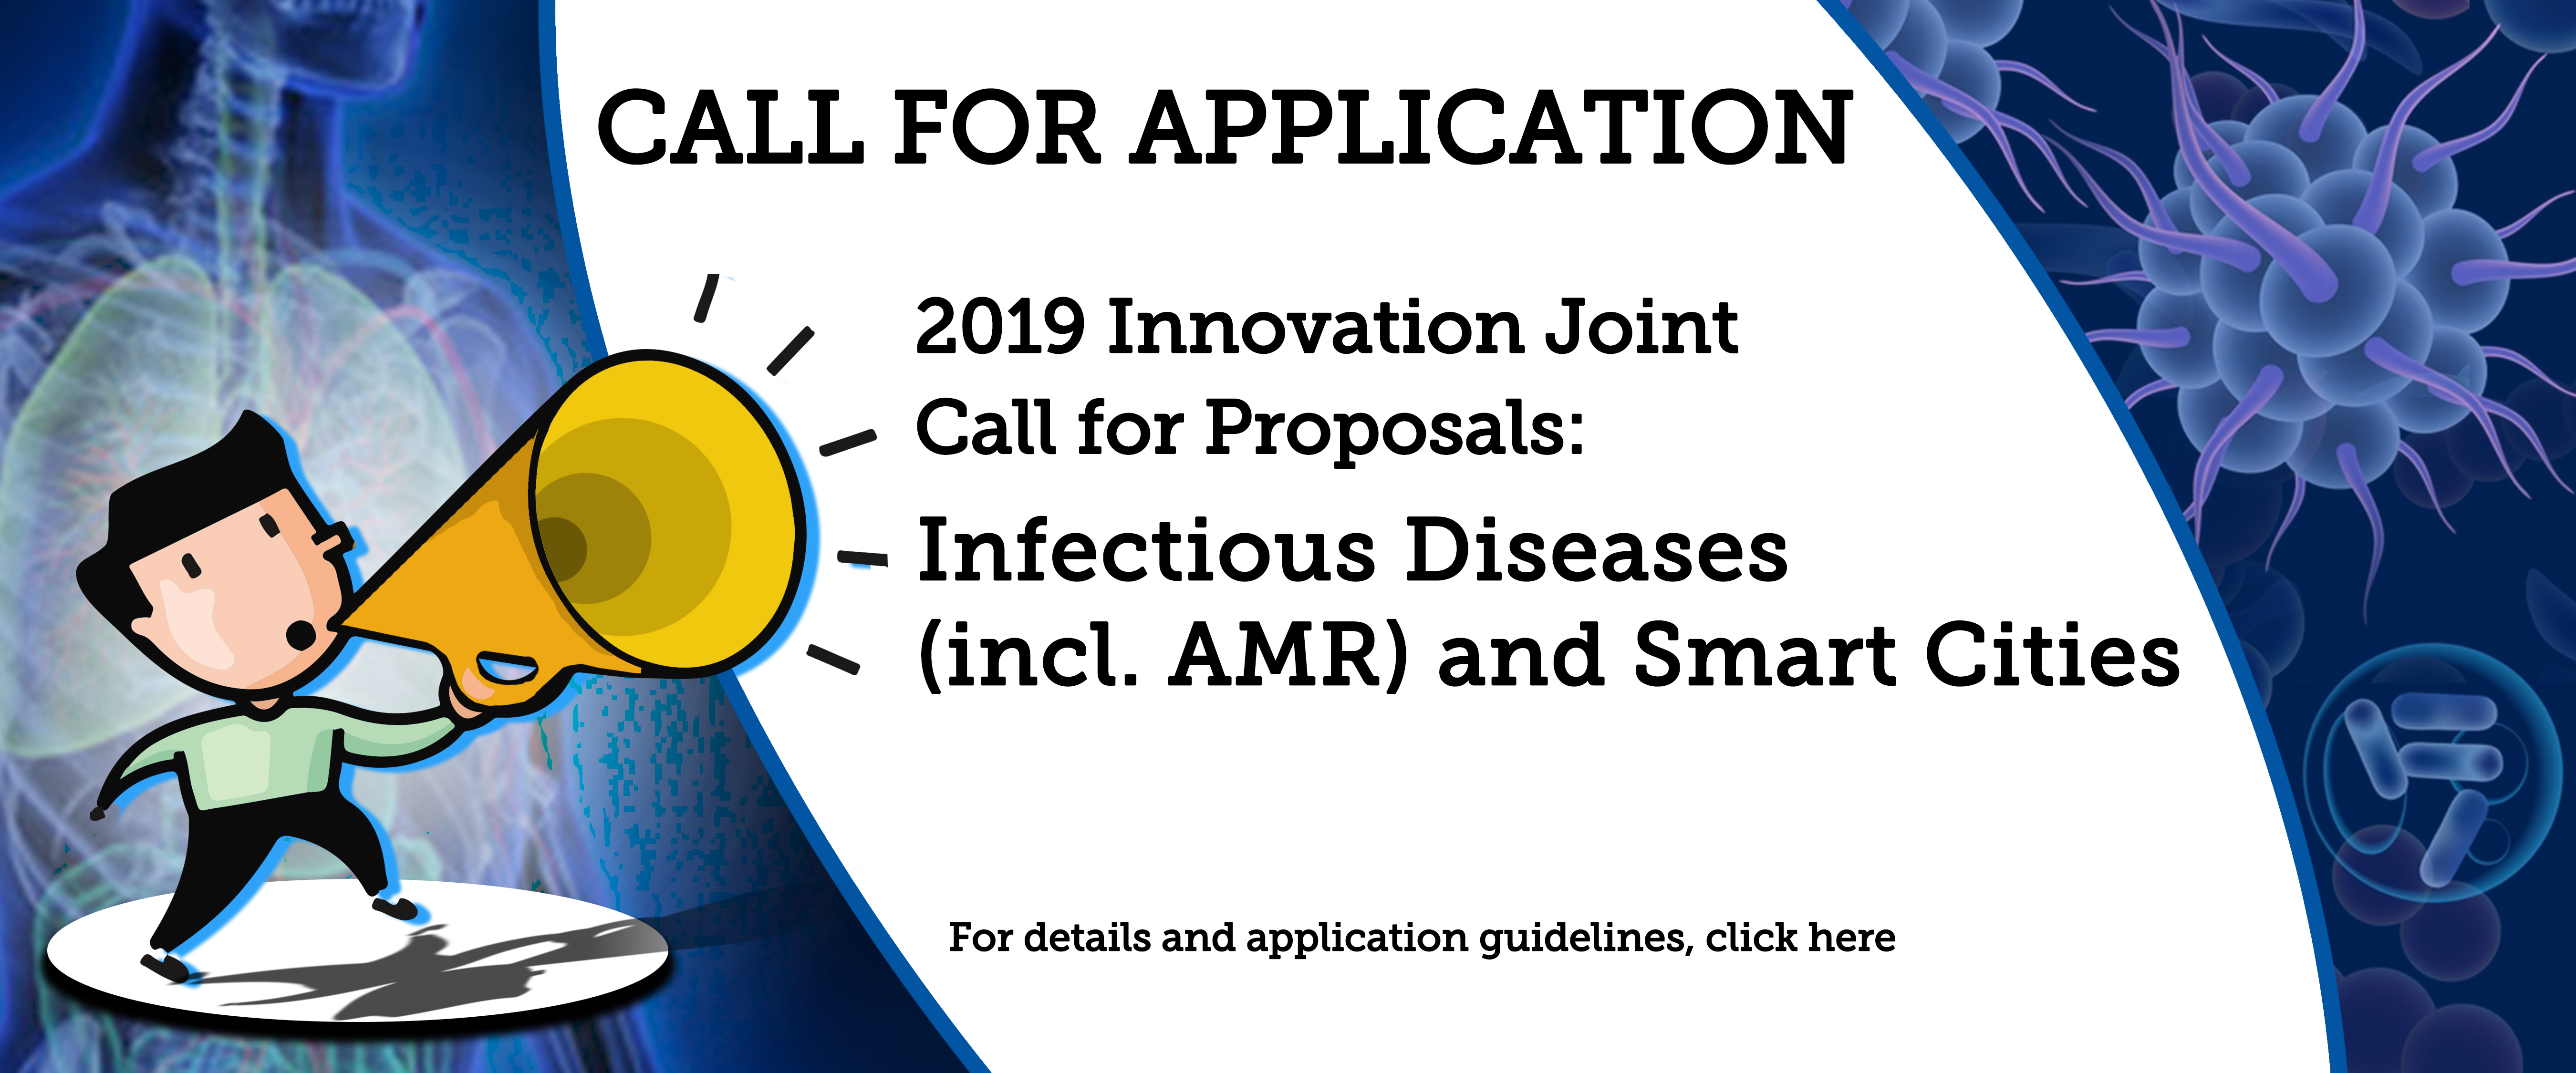 2019 Innovation Joint Call for Proposal